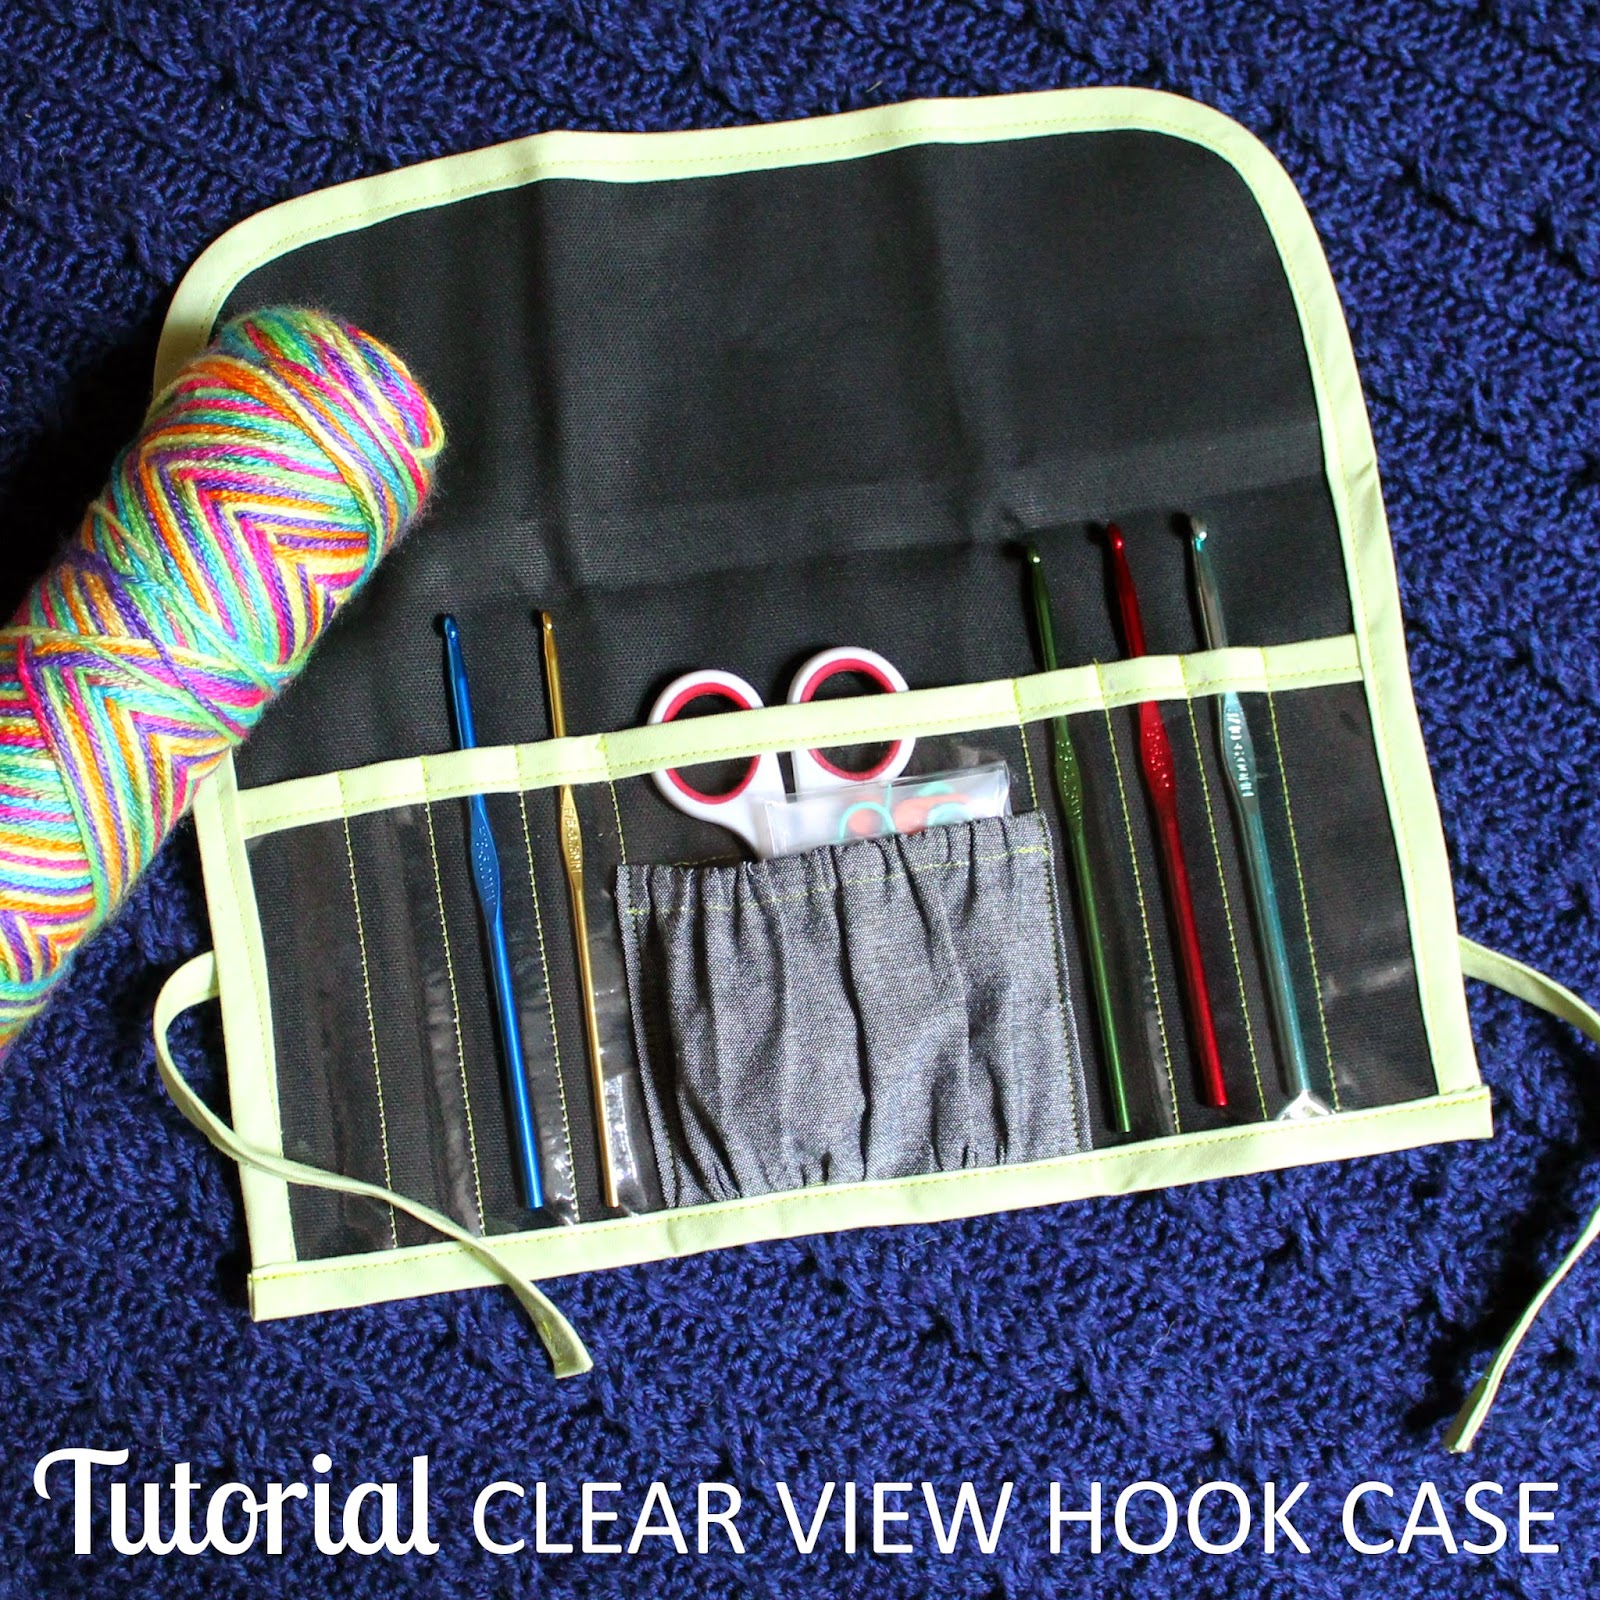 TUTORIAL: Clear View Crochet Hook Case | Step by step directions to sew a vinyl & canvas case. | The Inspired Wren